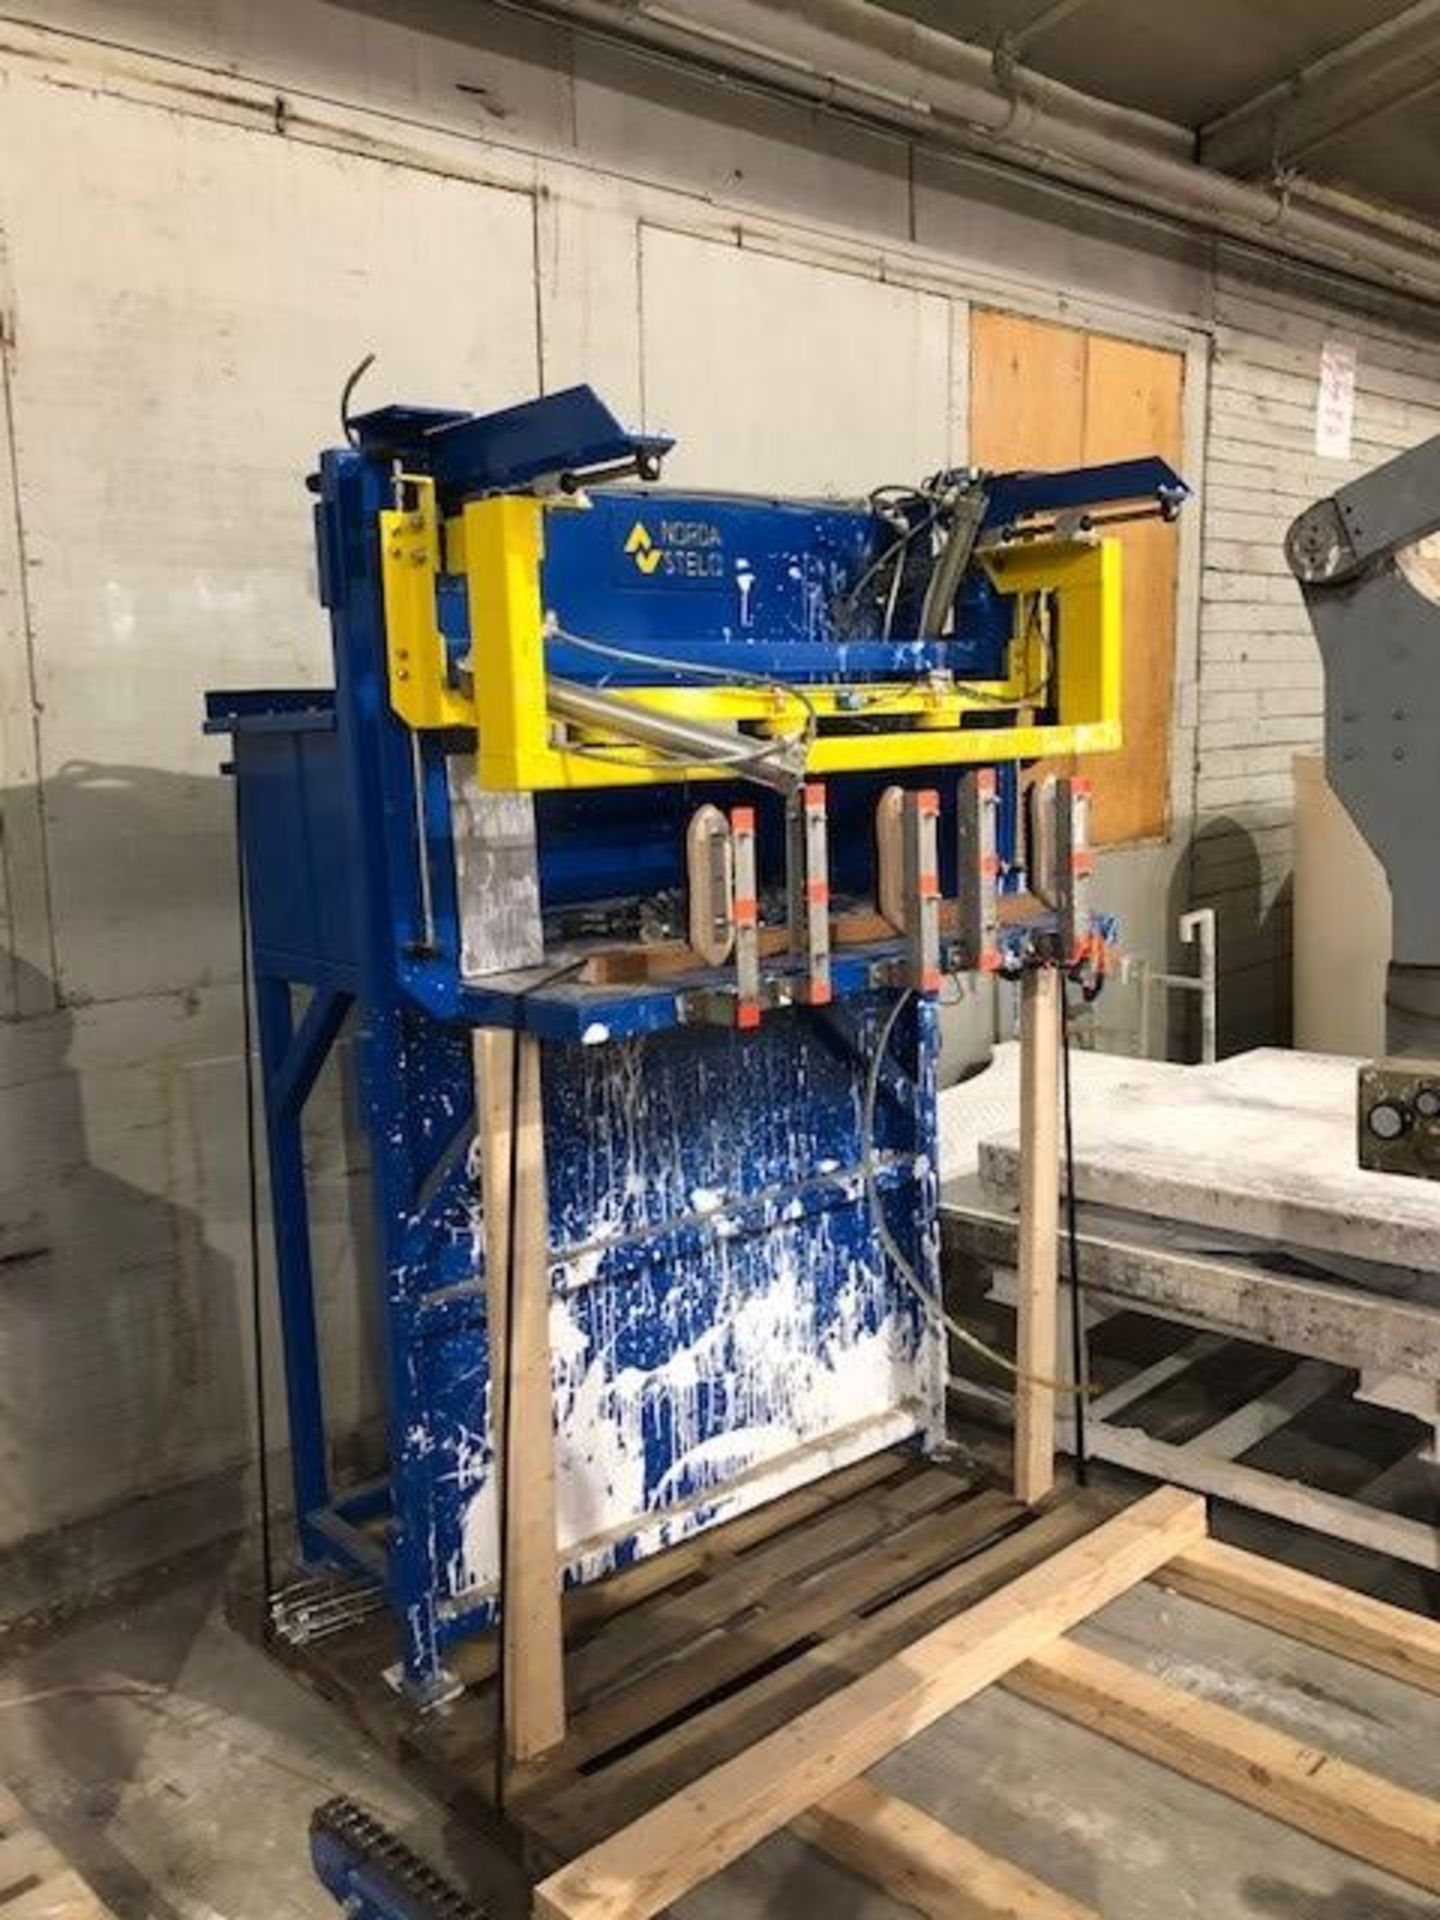 Lot 44 - Carton dispenser (robot sérac) Solutech